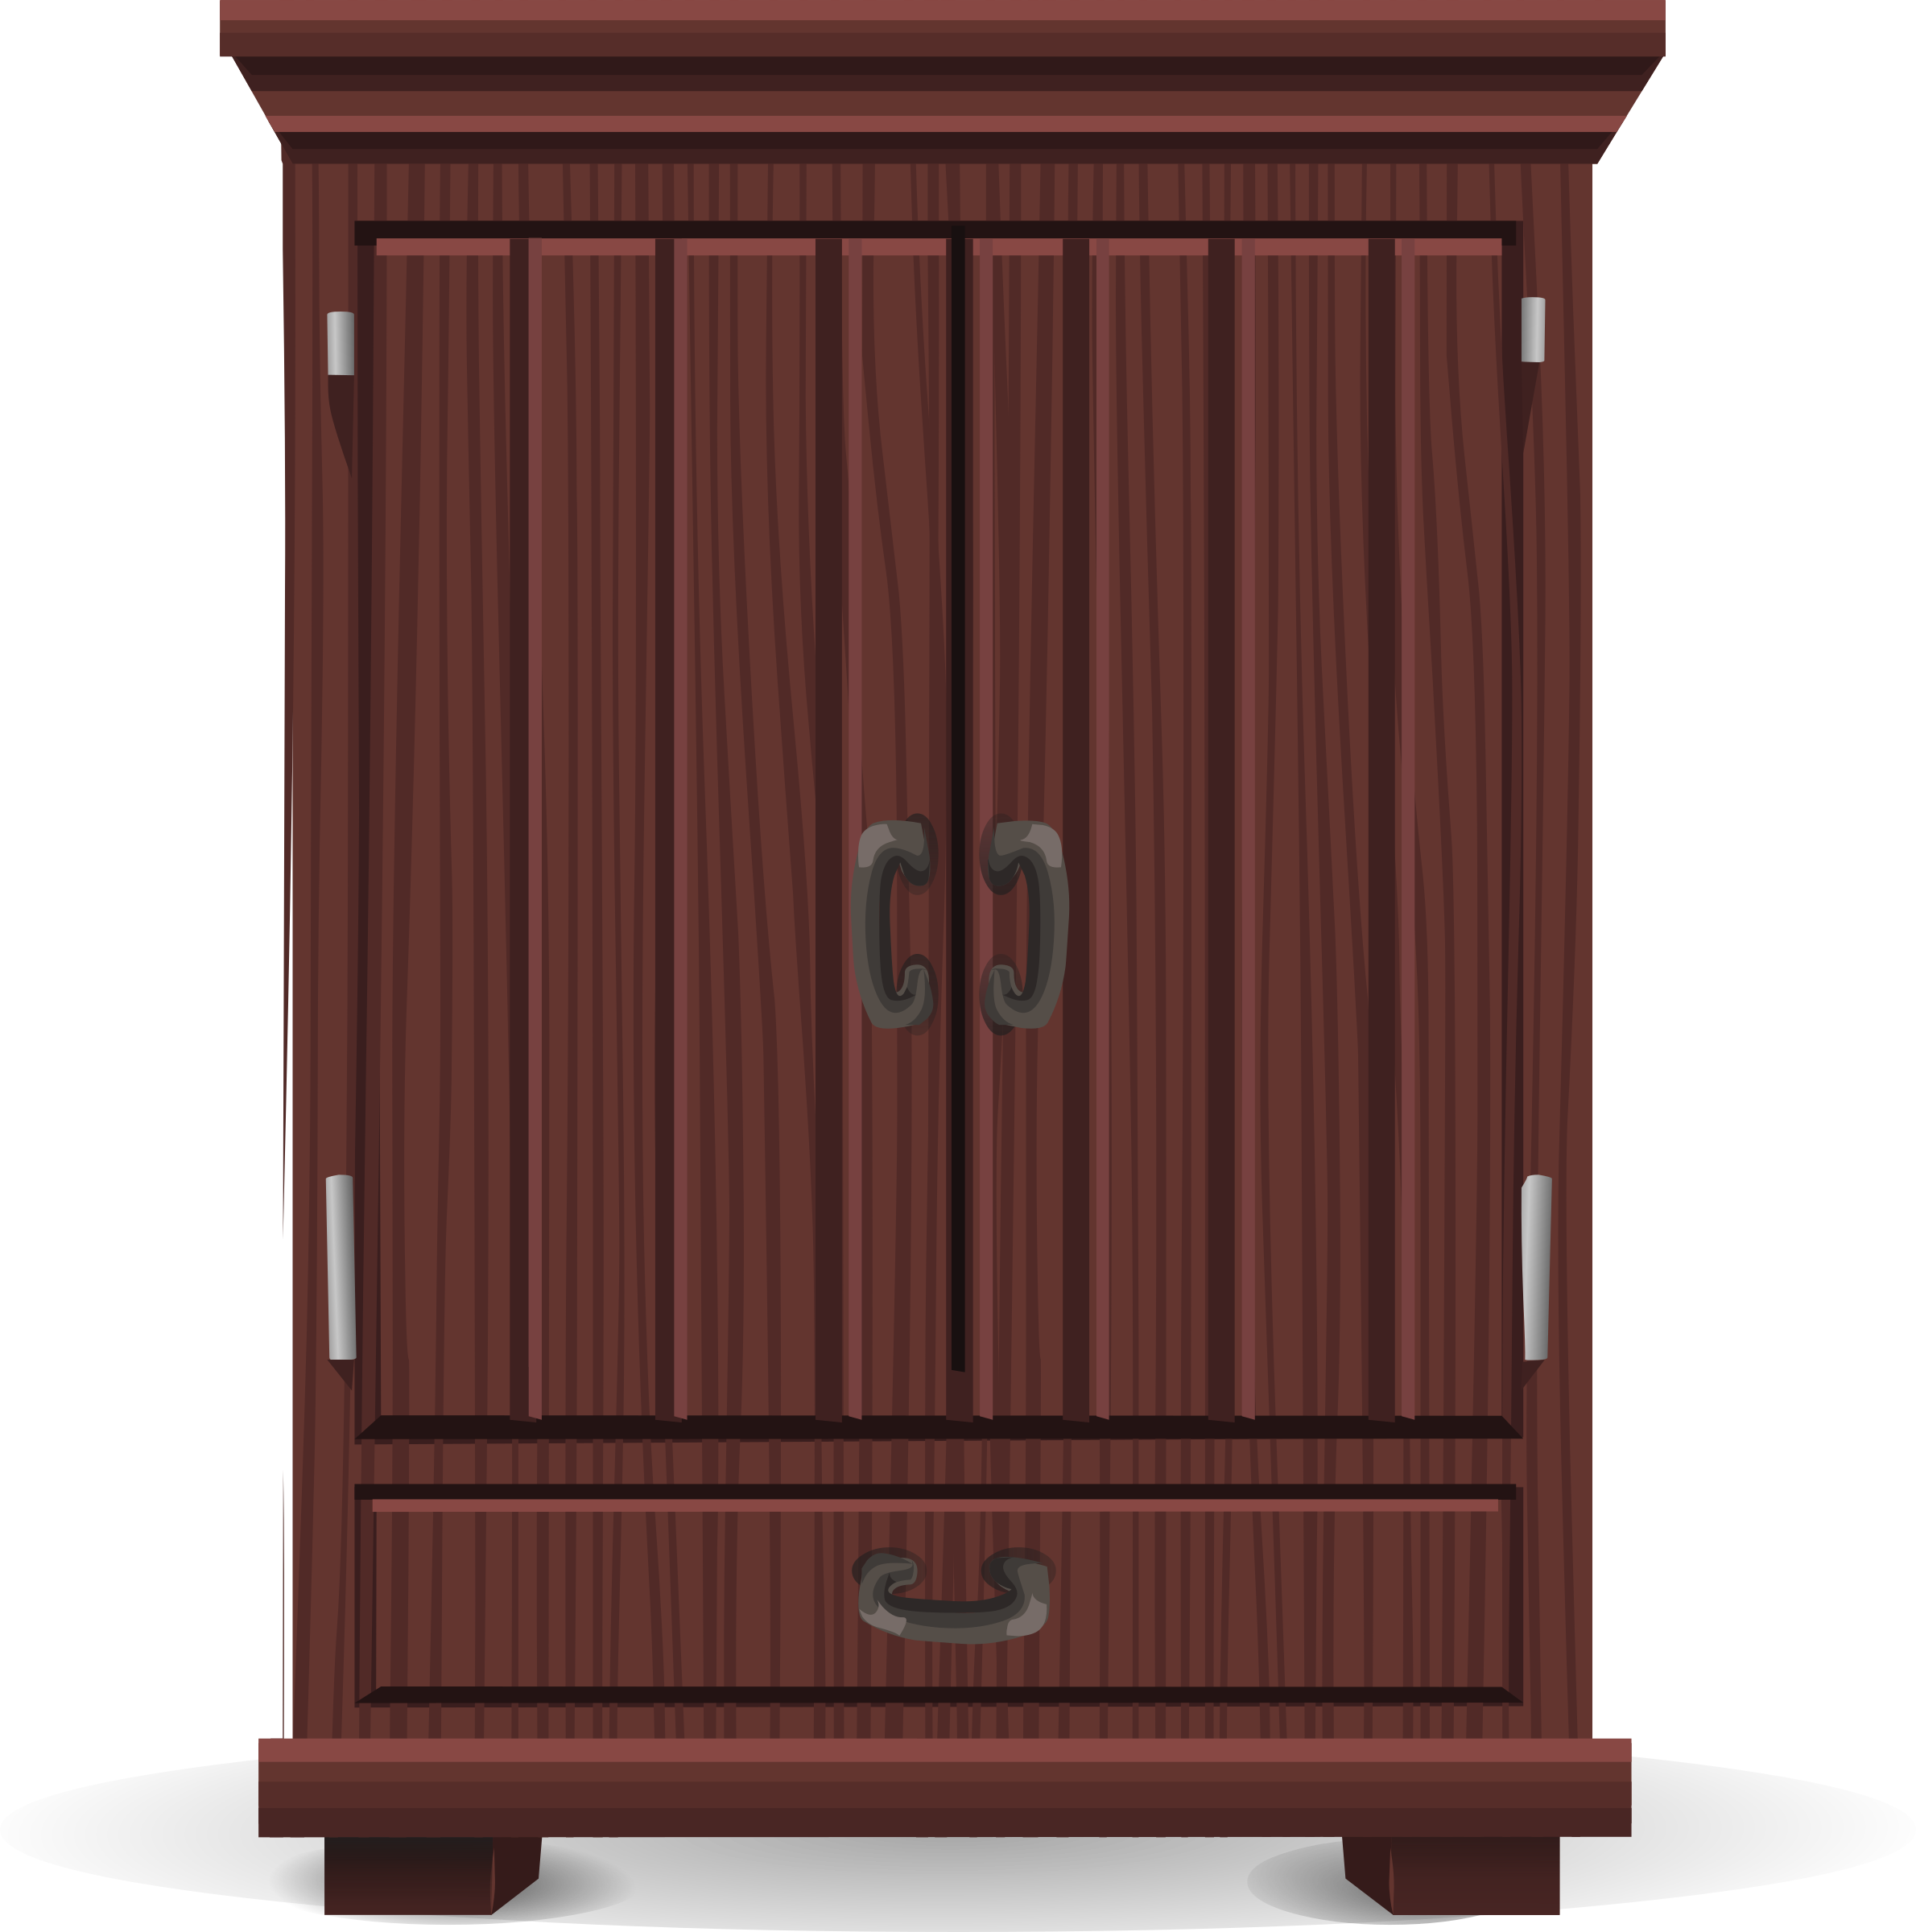 Mahogany cabinet from Glitch by anarres